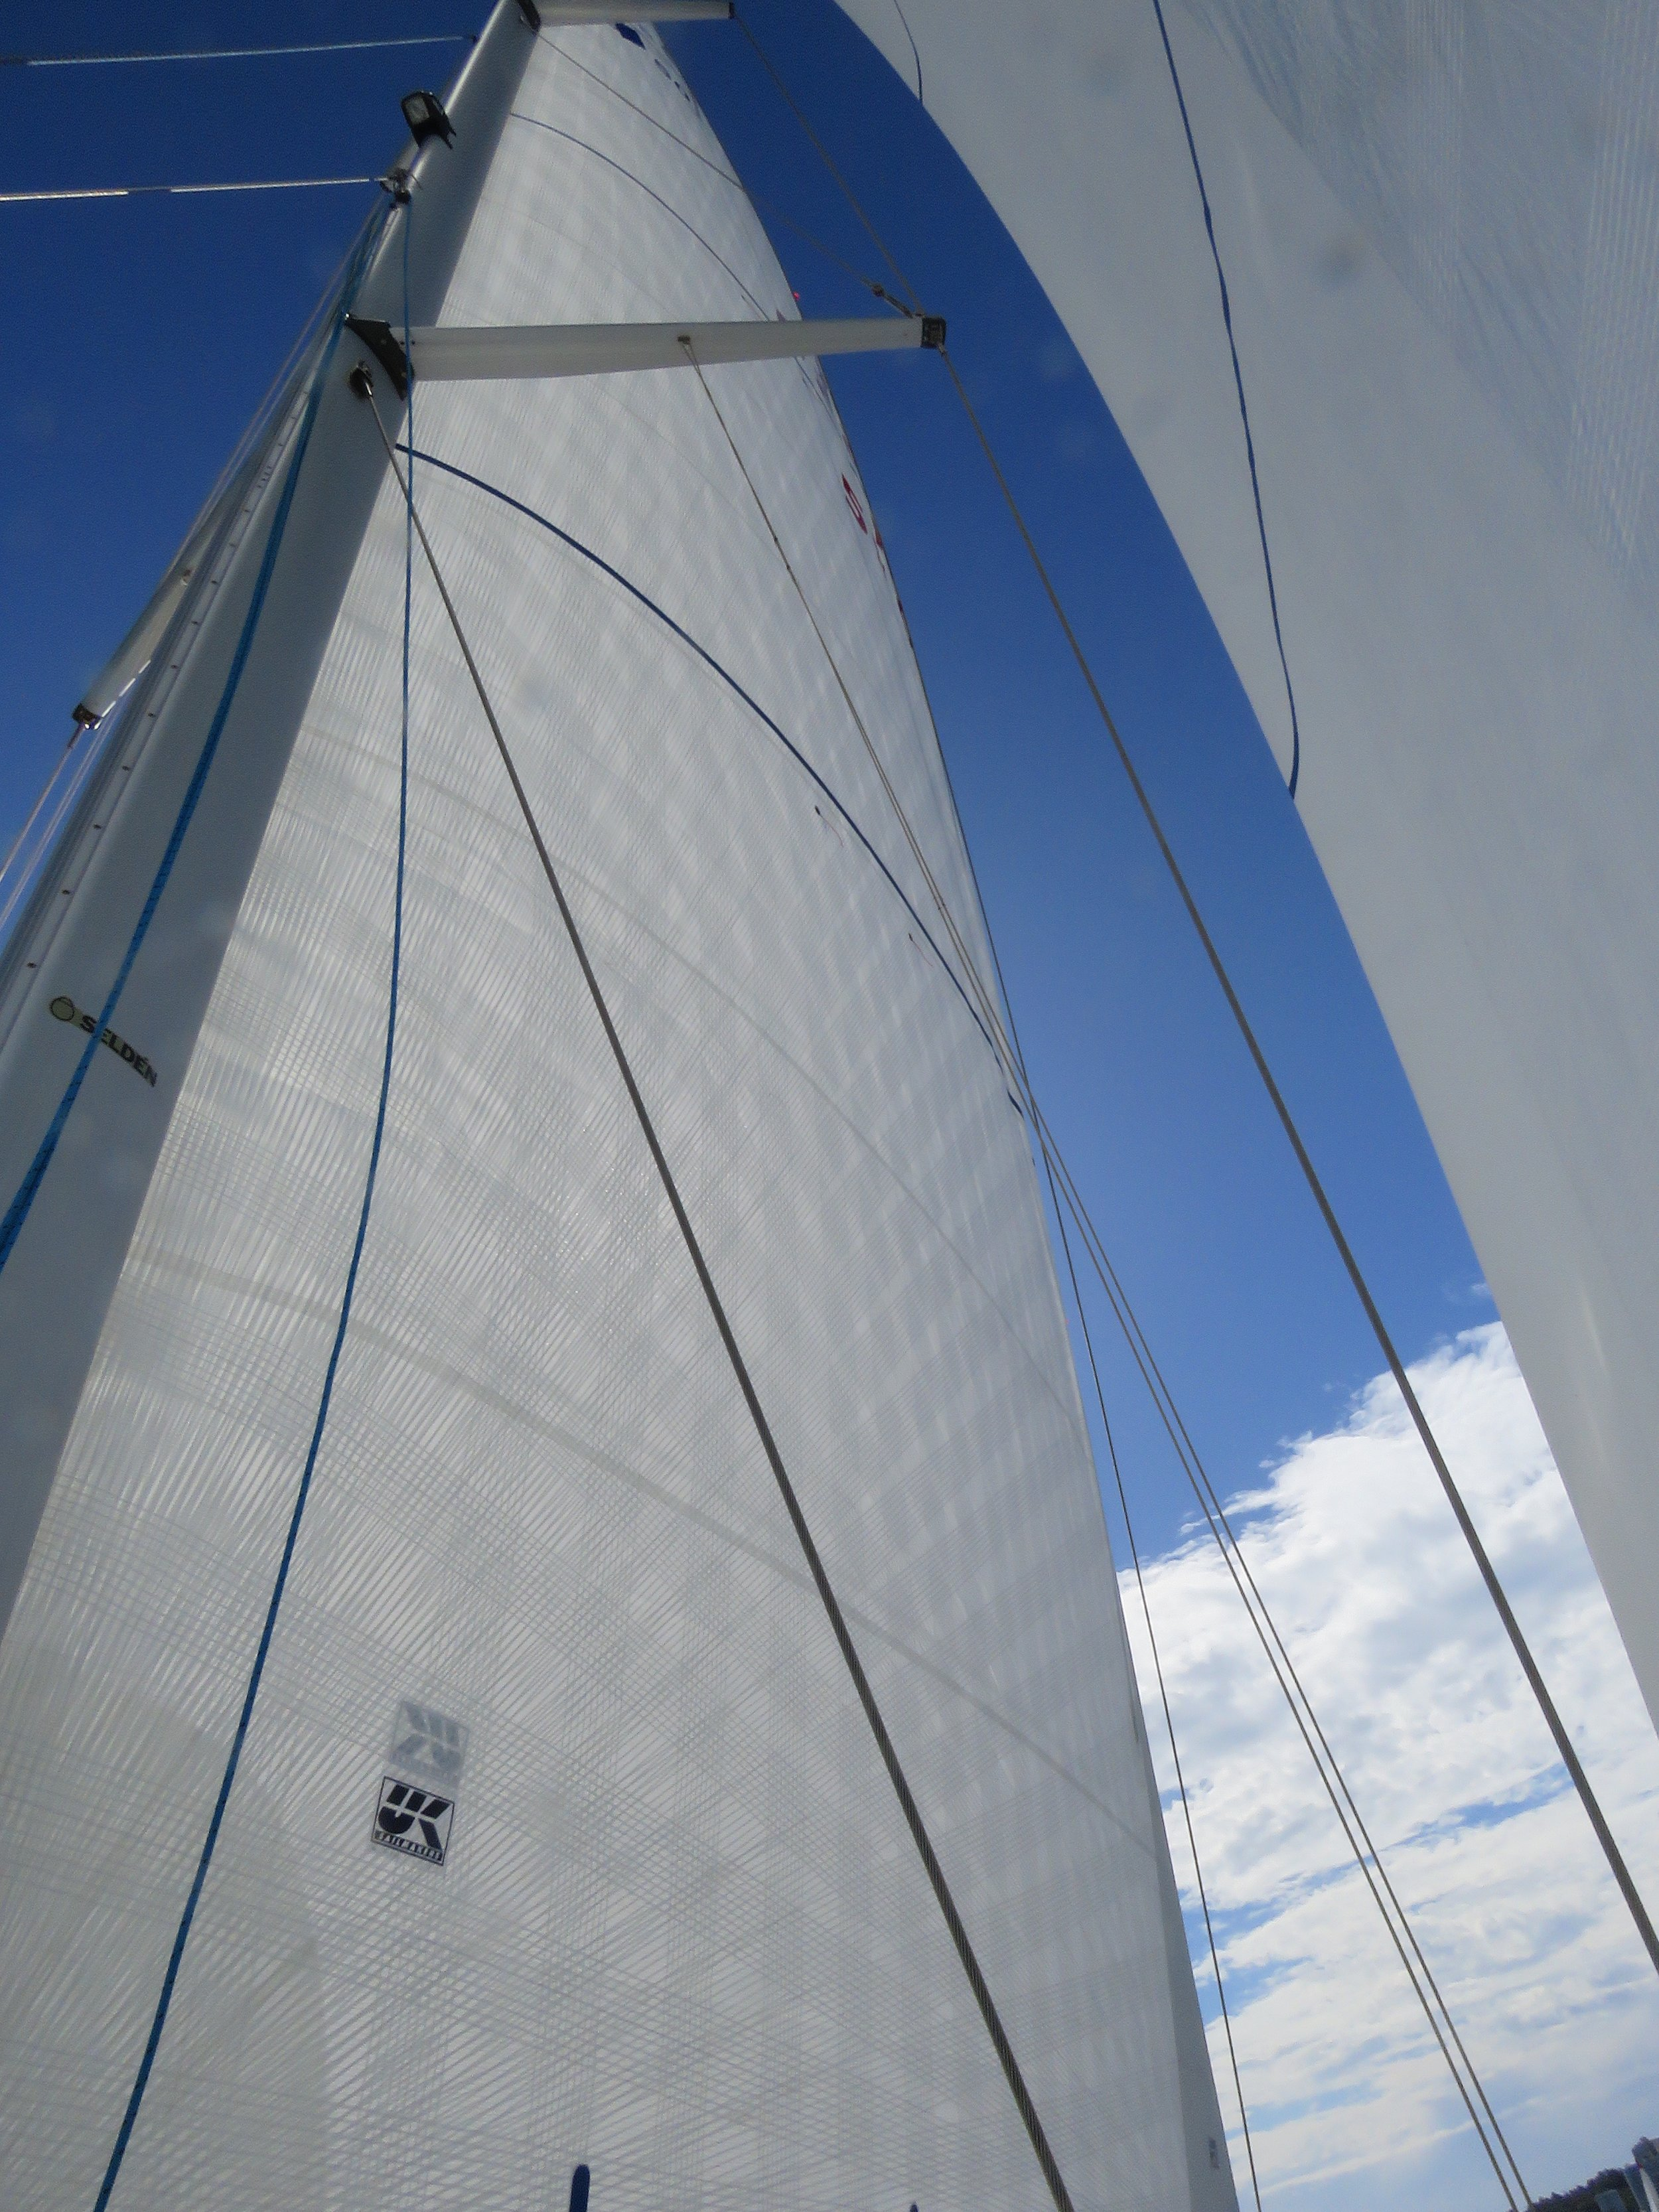 An example of the greater coverage of tapes on an X-Drive Endure sail.